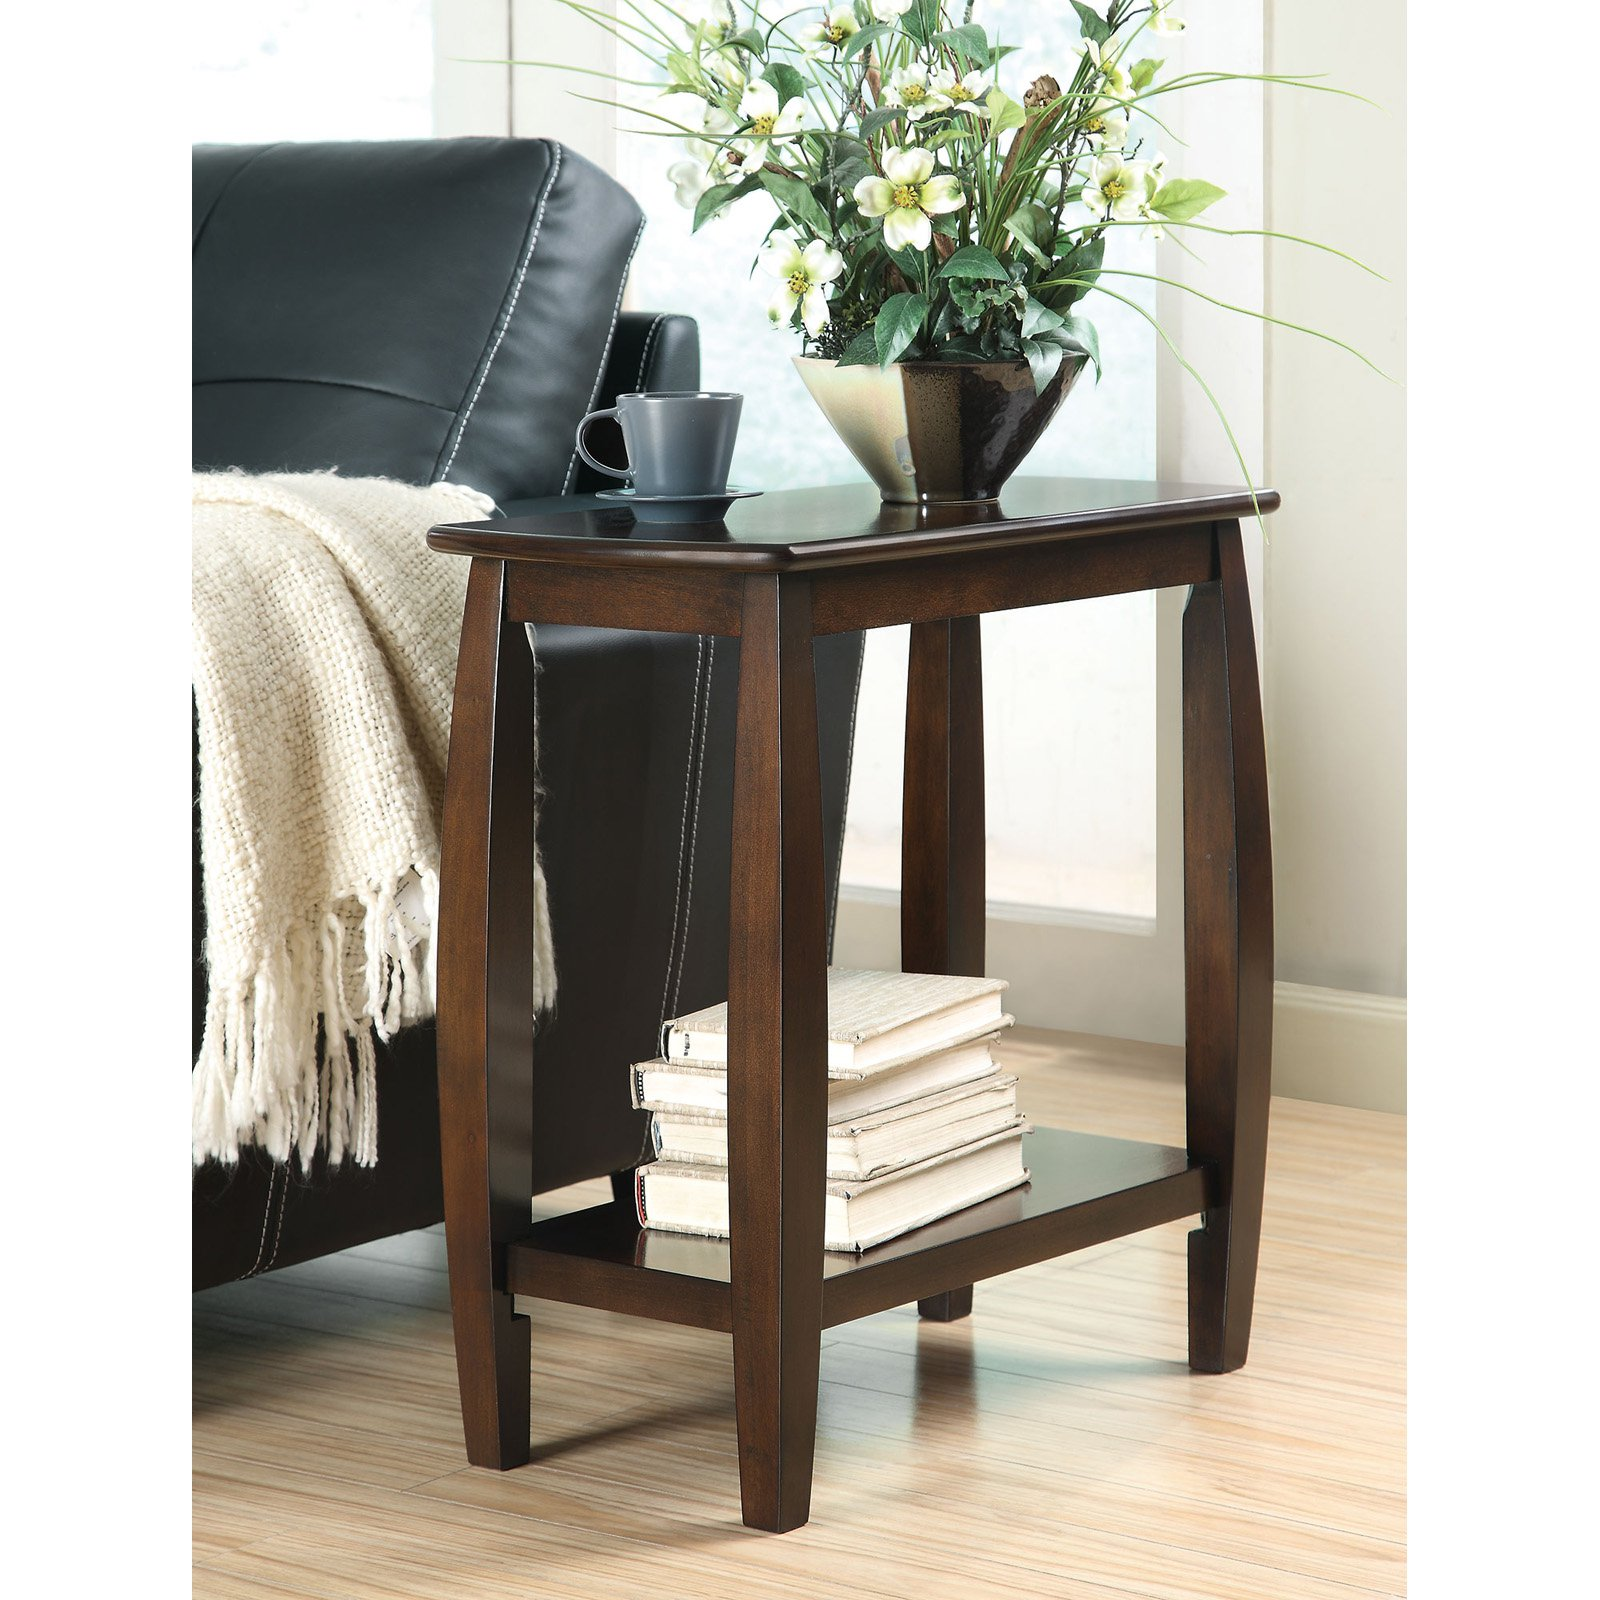 Coaster Furniture Cappuccino Transitional Chairside End Table by Coaster